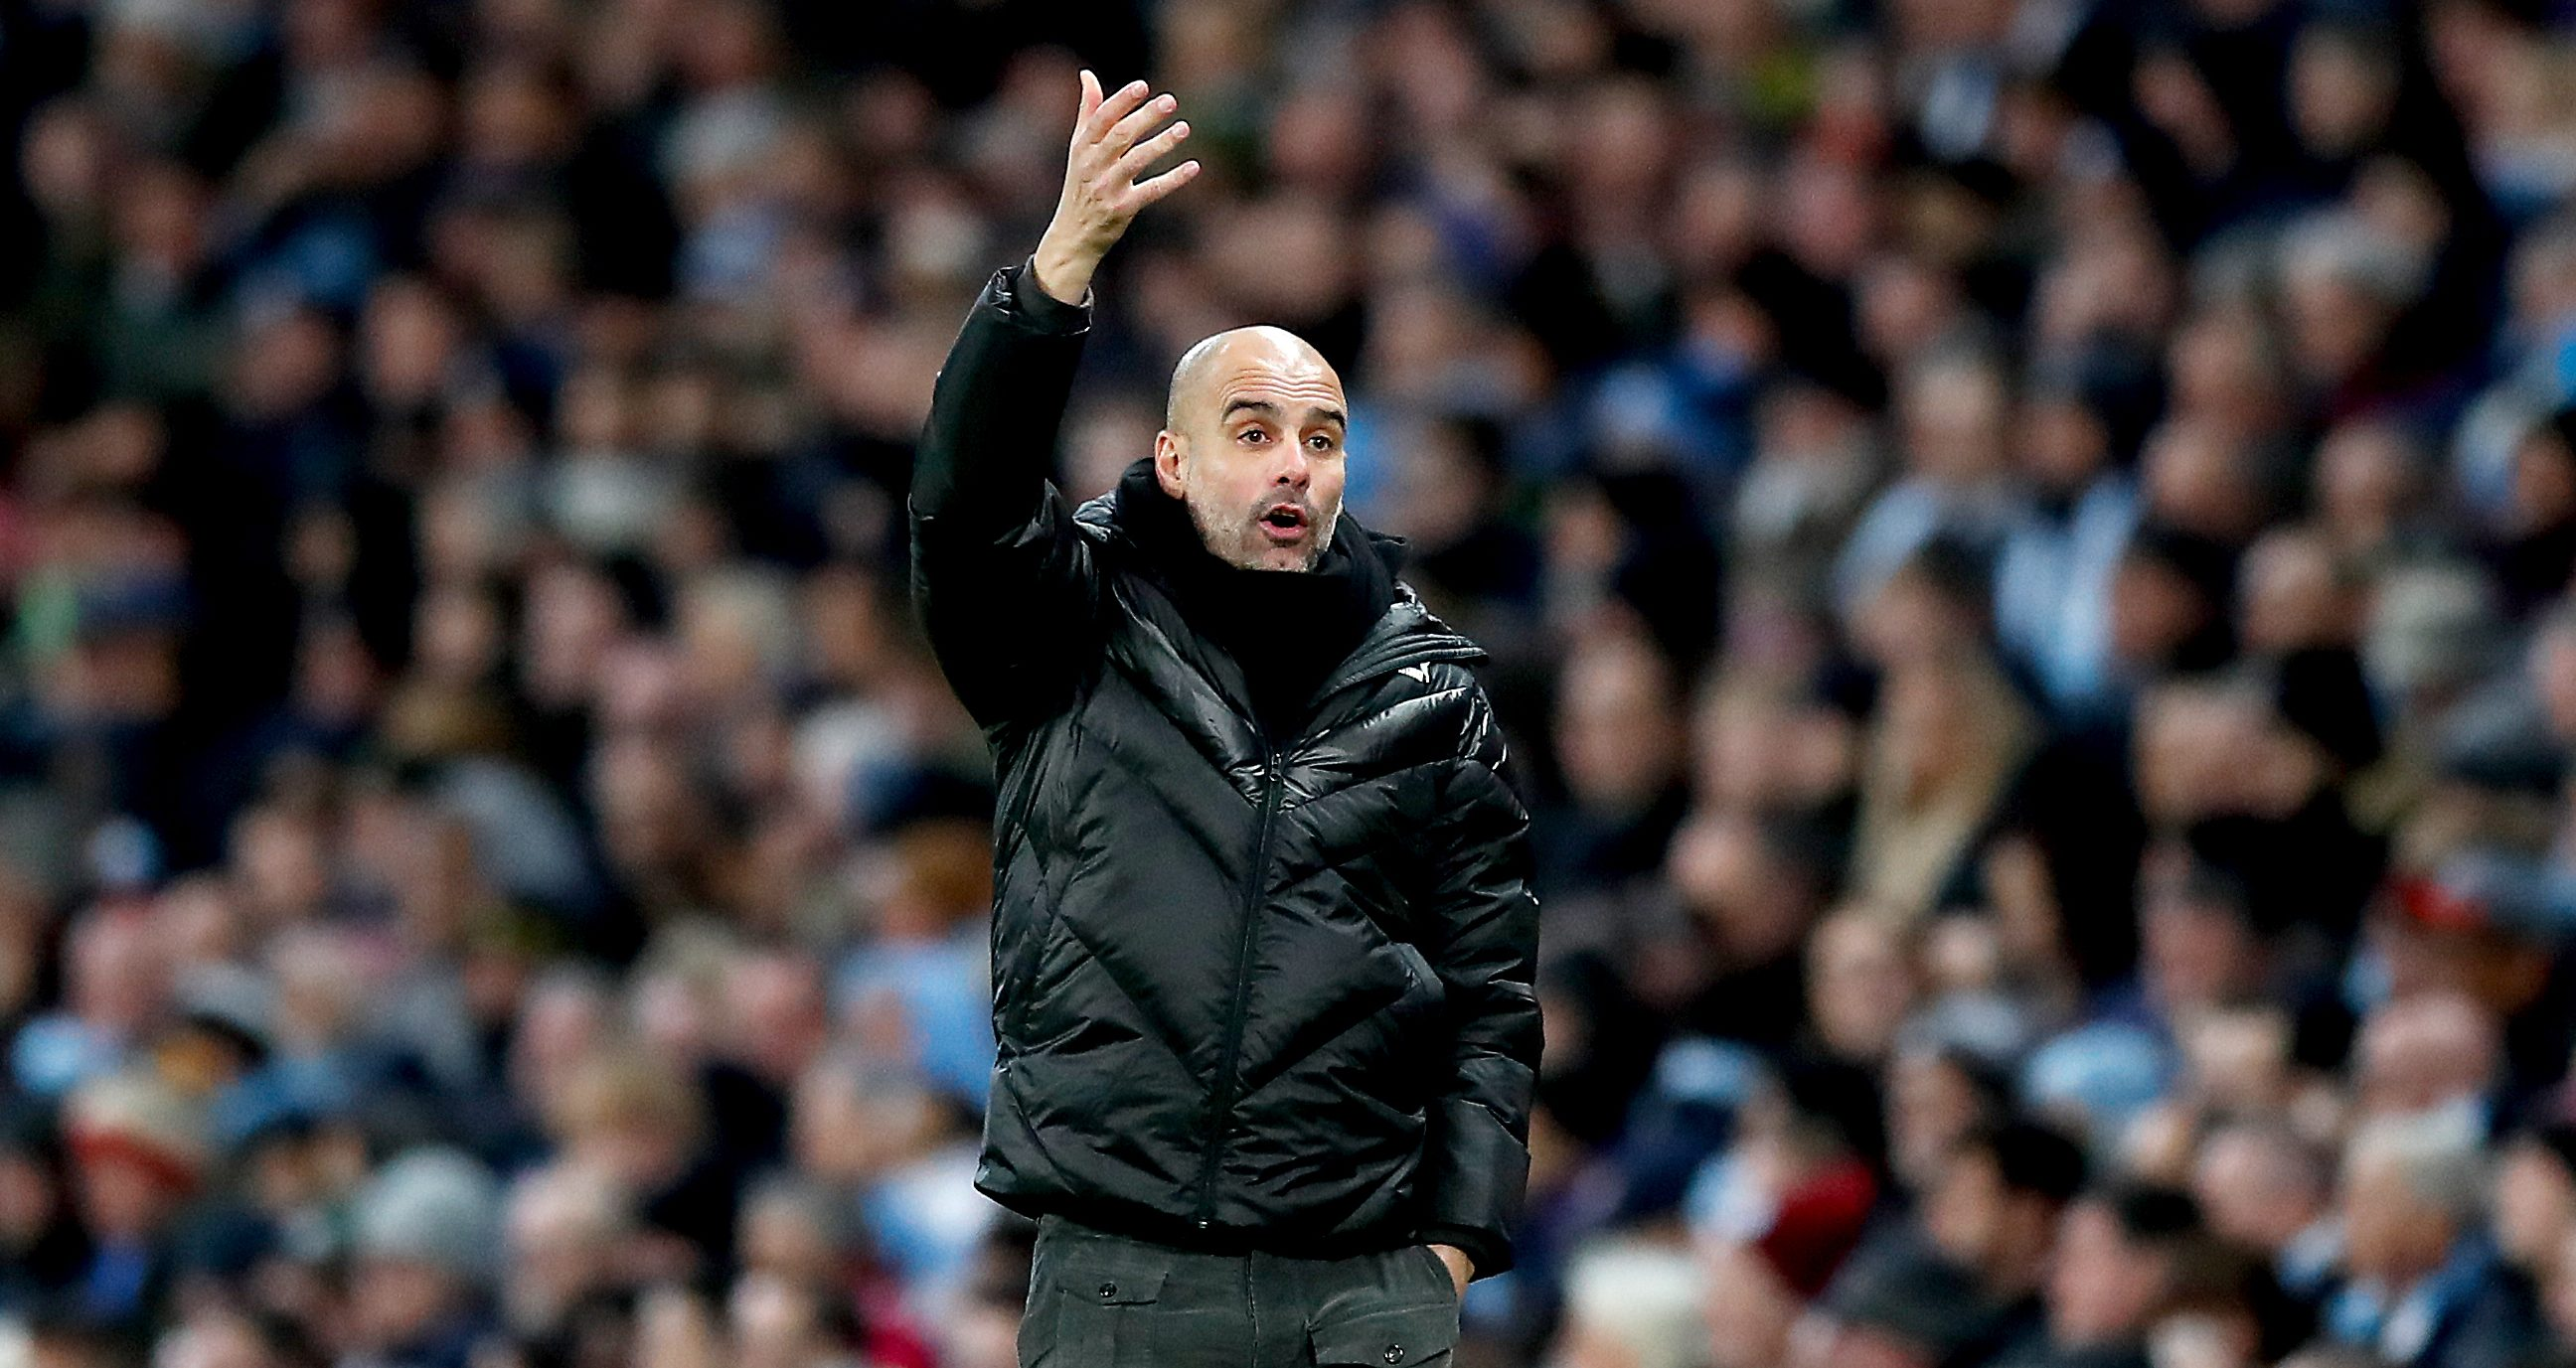 What was Guardiola trying to say?